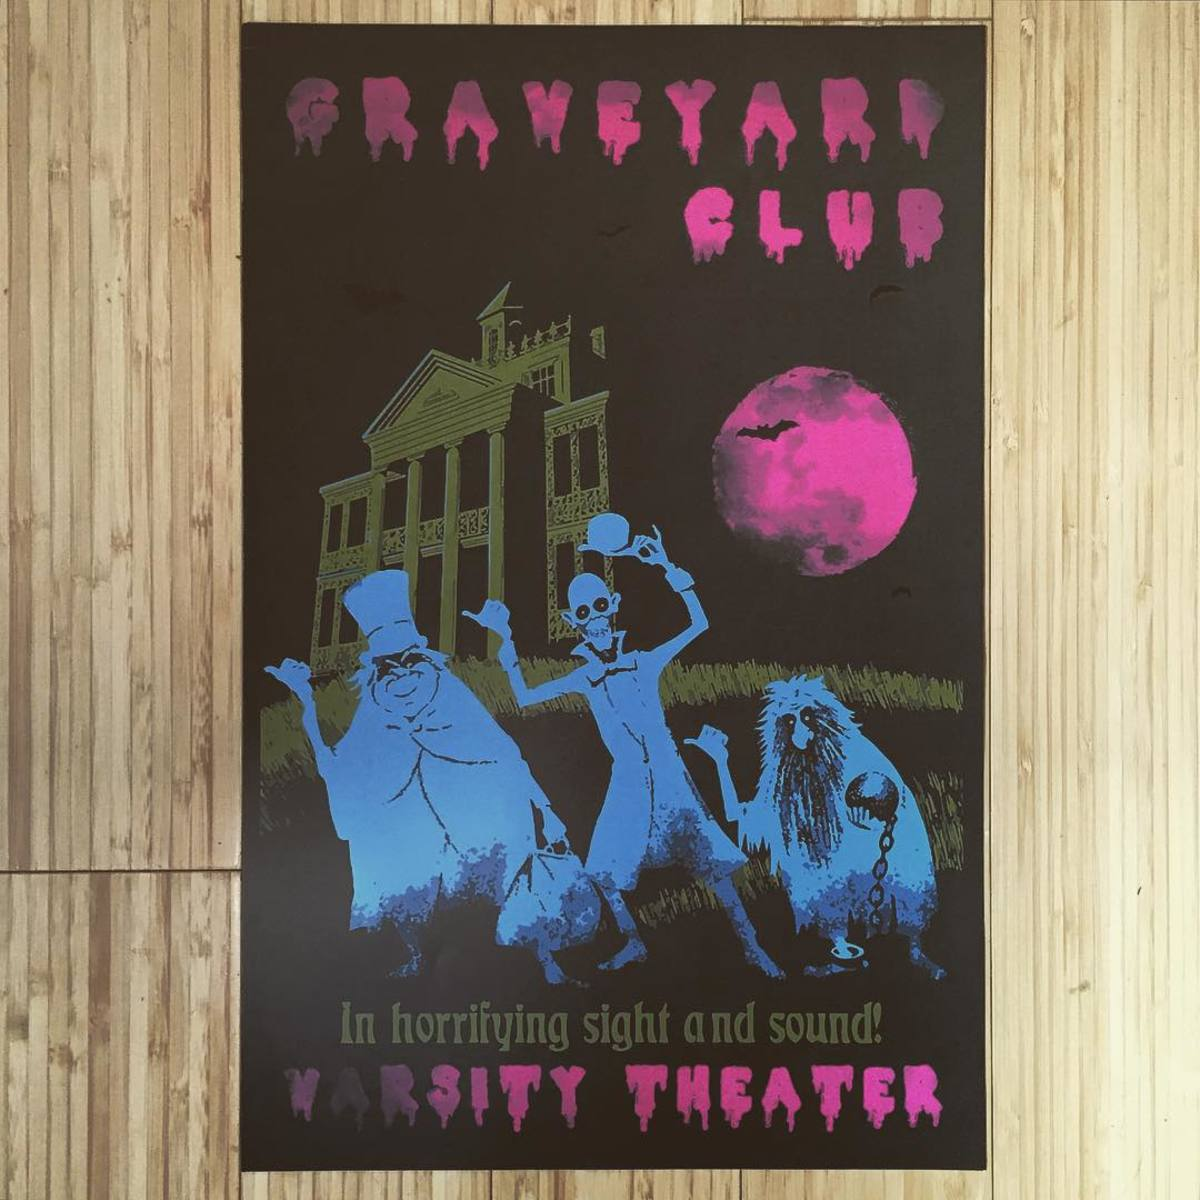 We need this Graveyard Club poster.